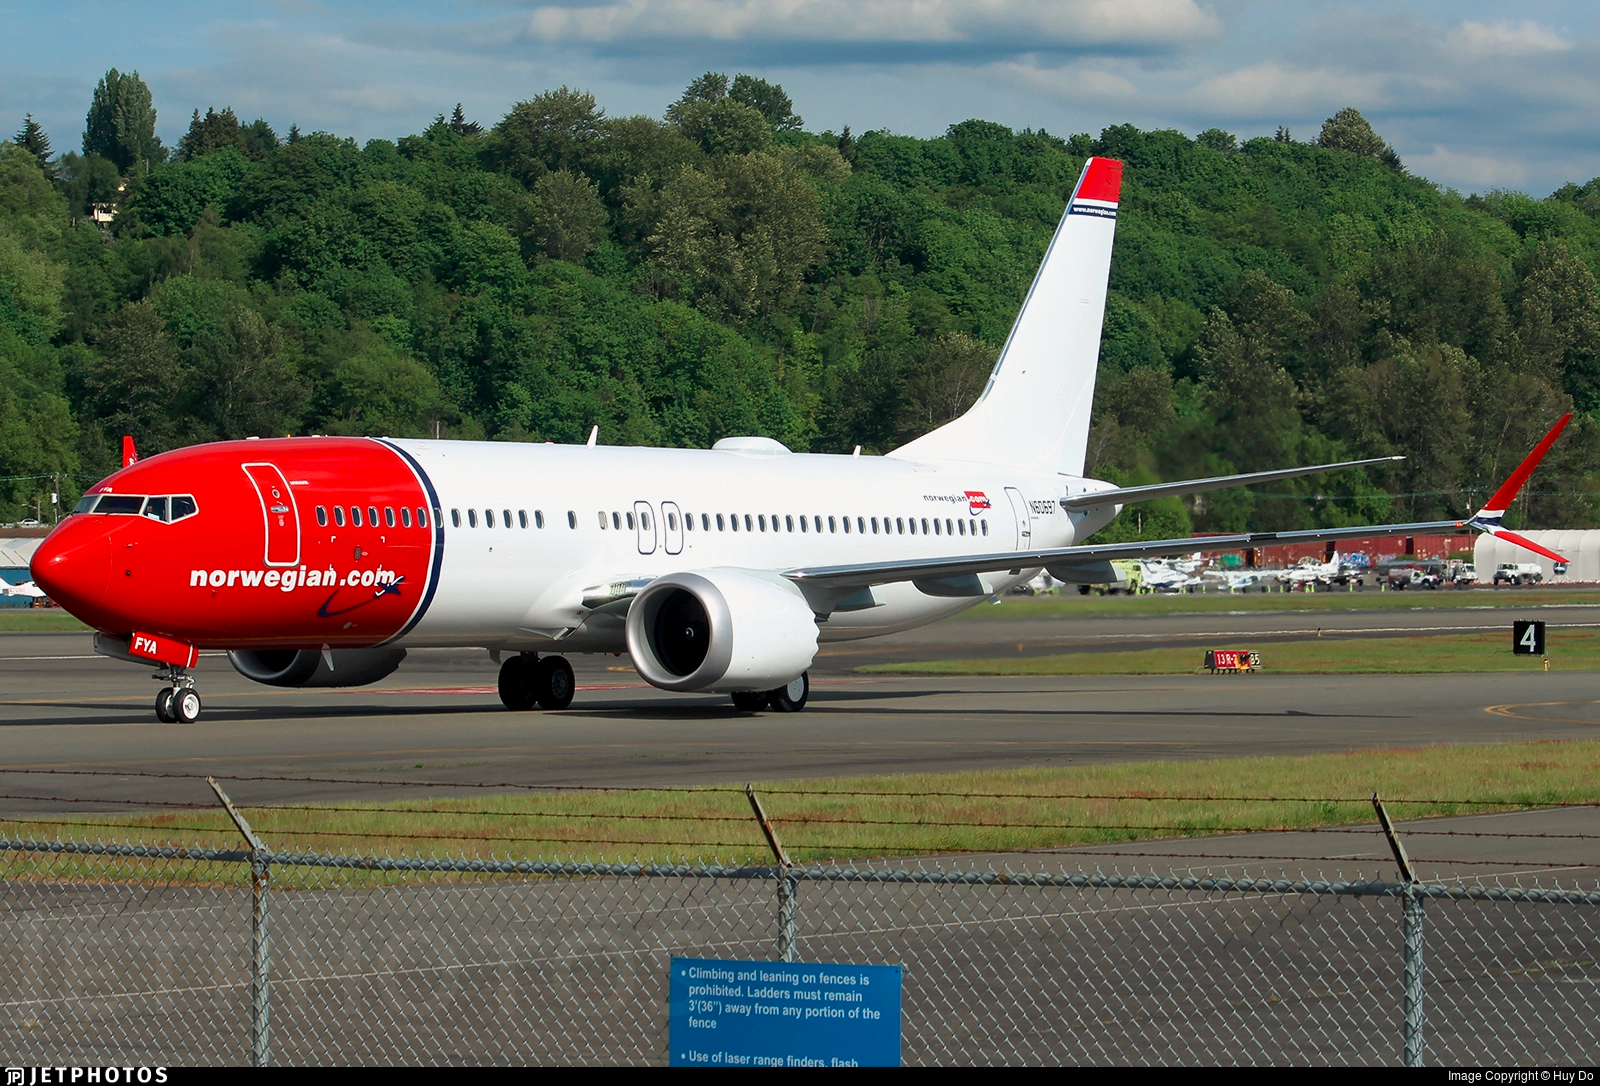 B60697 – Boeing 737 MAX8. King County International Airport-Boeing Field 19. maj 2017 (Foto: Huy Do)